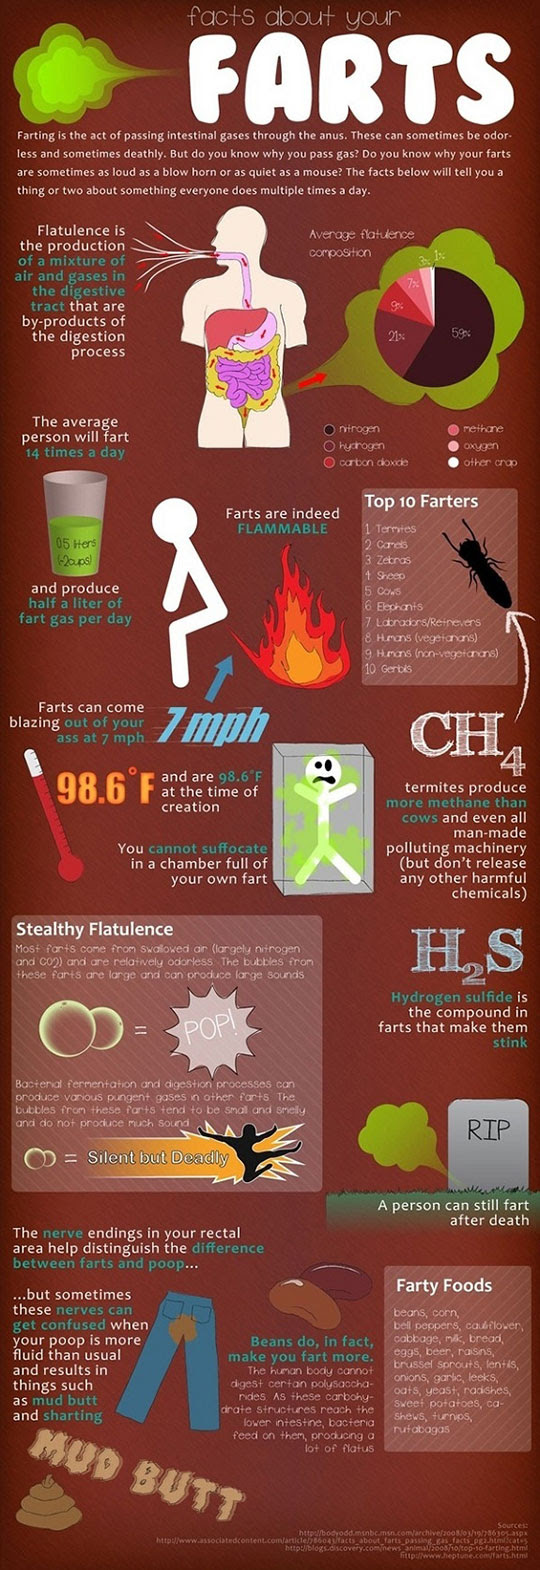 Different facts of fart in info-graphics